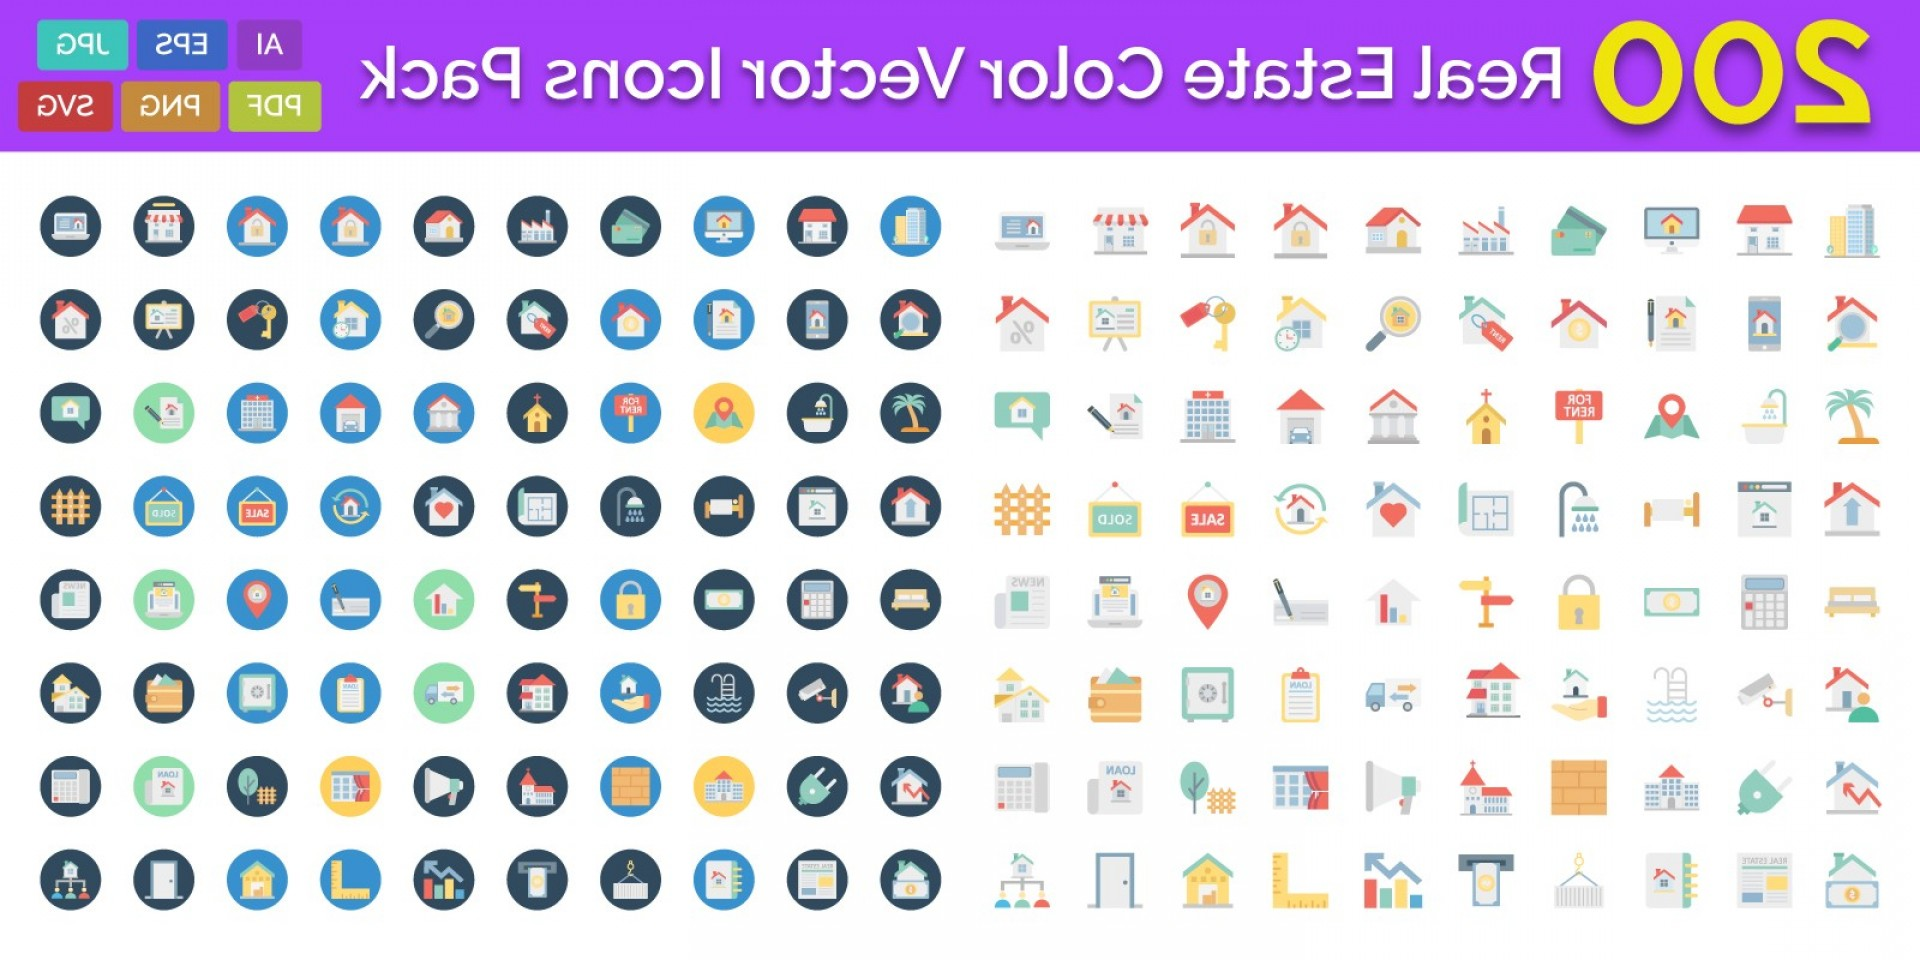 Tumblr App Icon Vector: Real Estate Color Vector Icons Pack